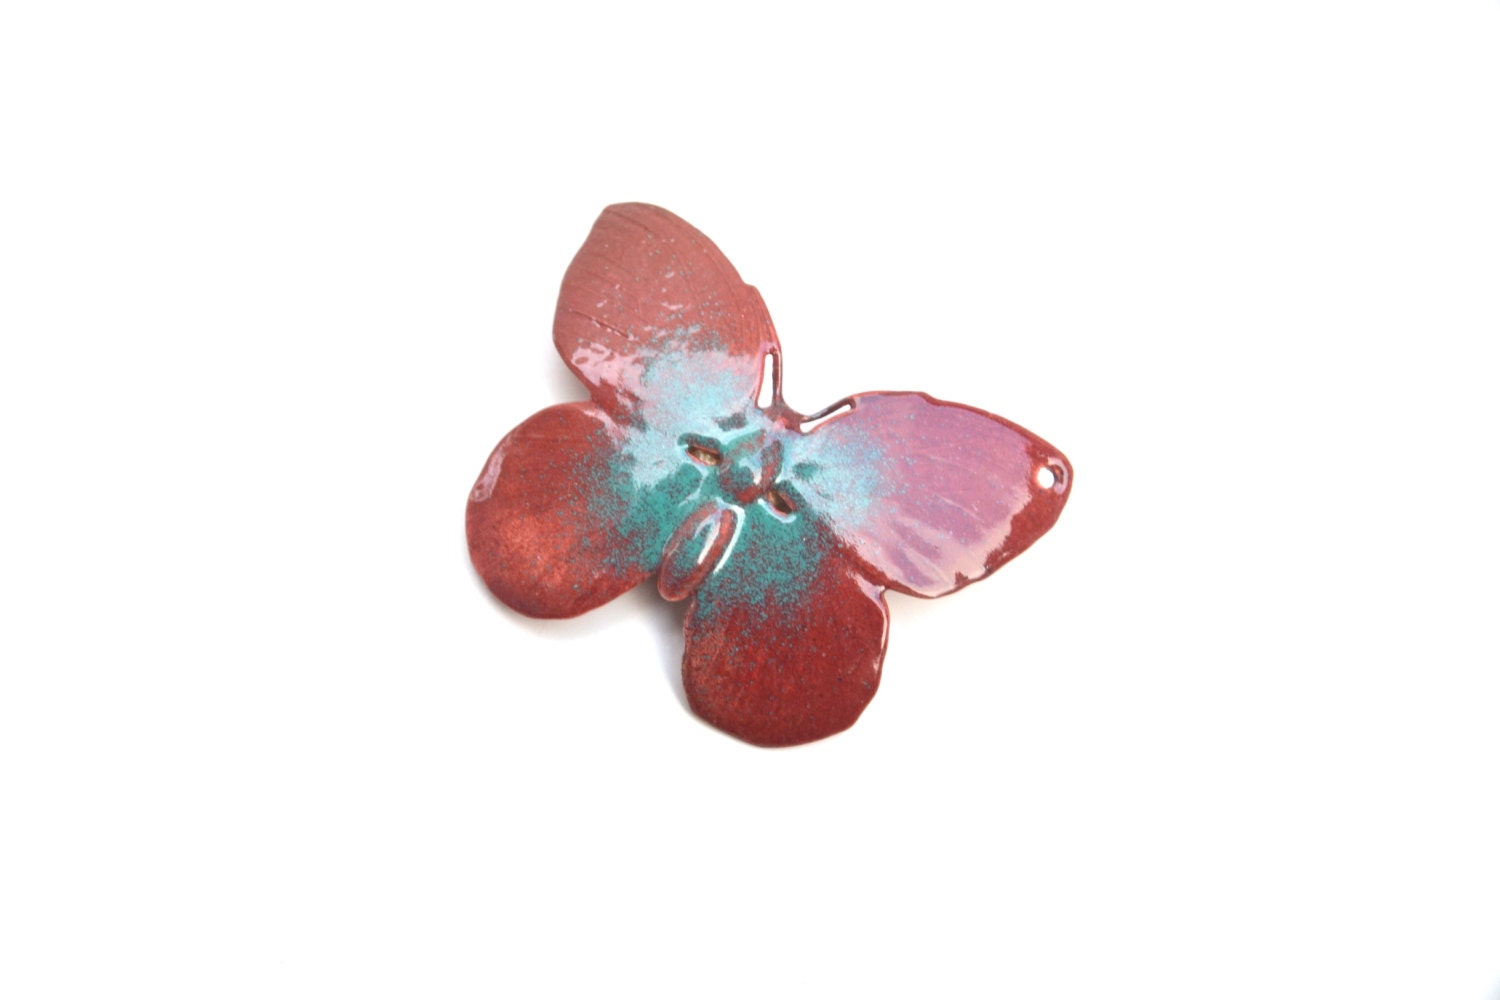 Enamel Butterfly - Torch fire Enamel Flower, enamel brass - ArtIncendi